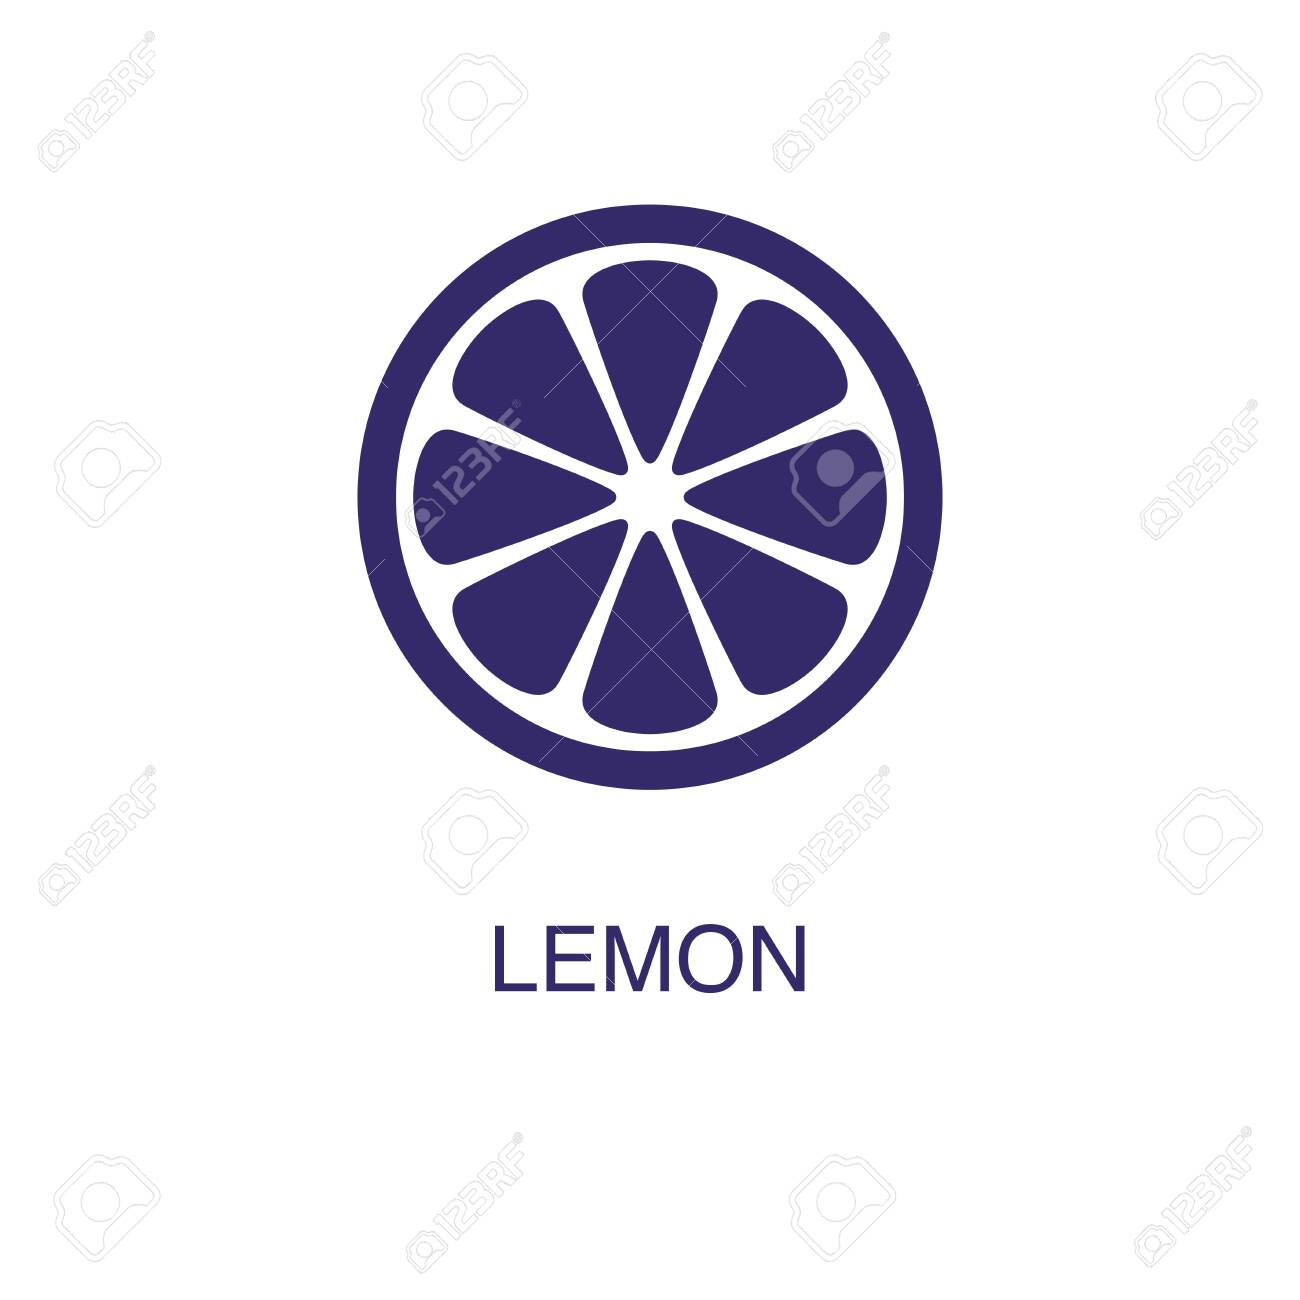 Lemon element in flat simple style on white background. Lemon icon, with text name concept template - 134450457